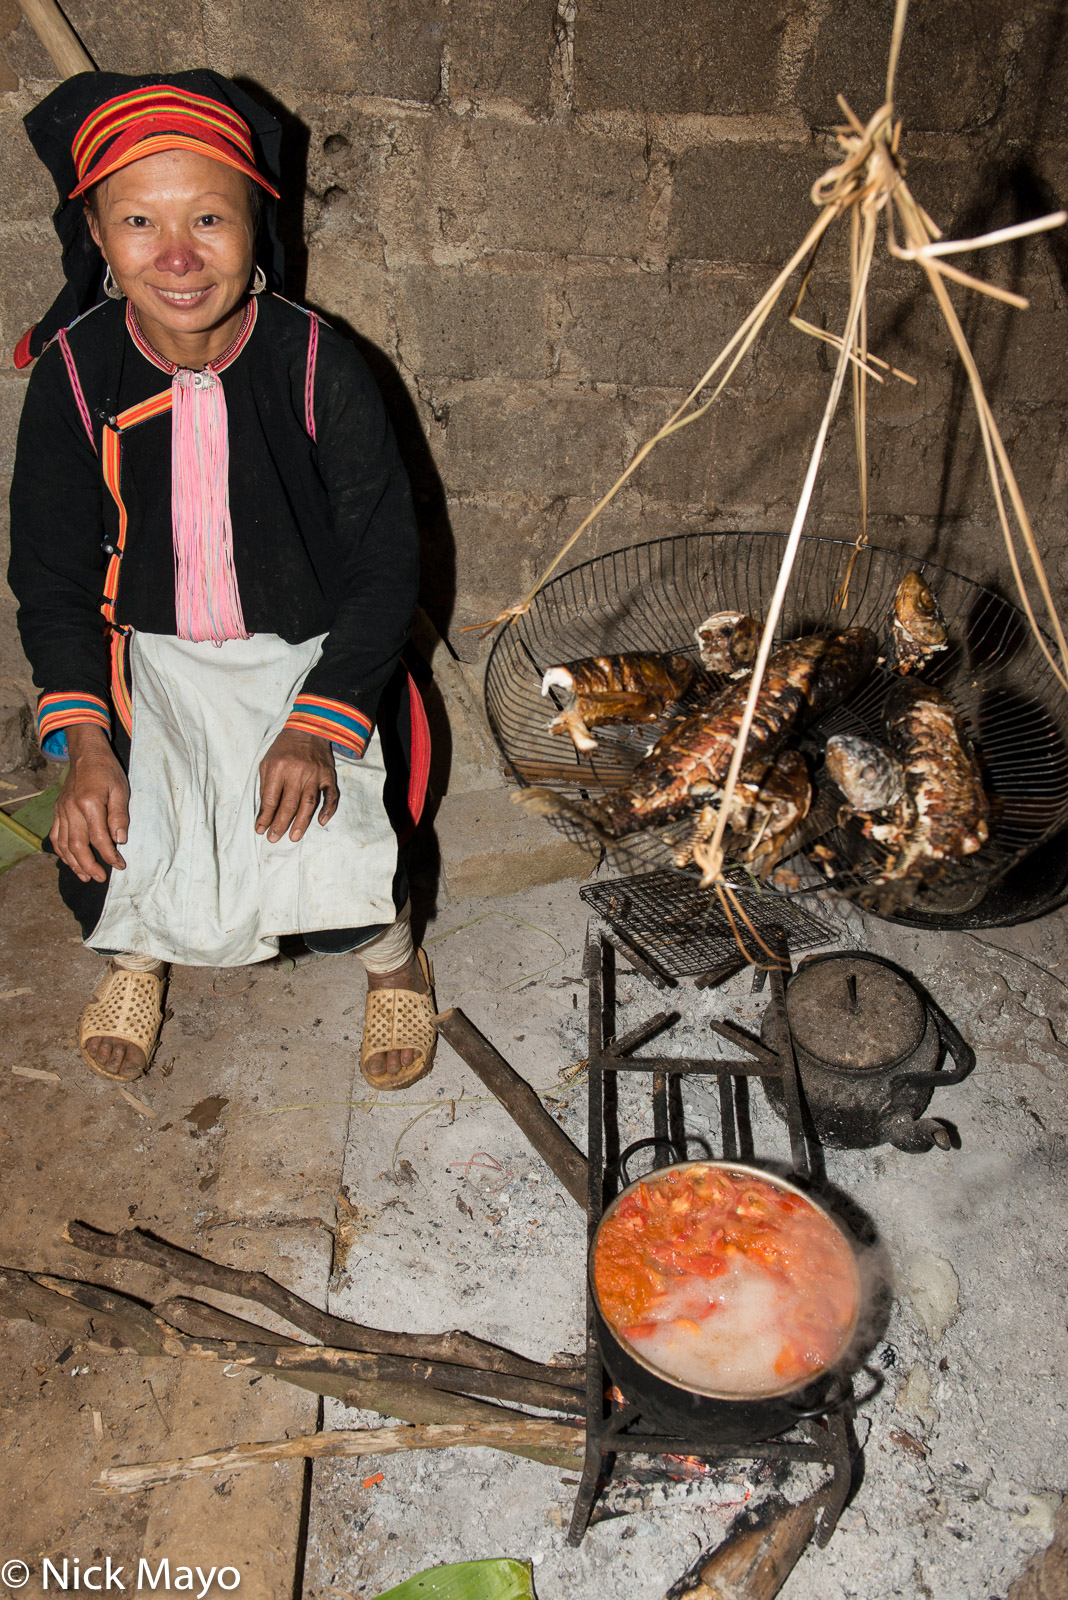 Apron, Cooking, Earring, Fish, Hat, Lai Chau, Soup, Vietnam, Yao, photo